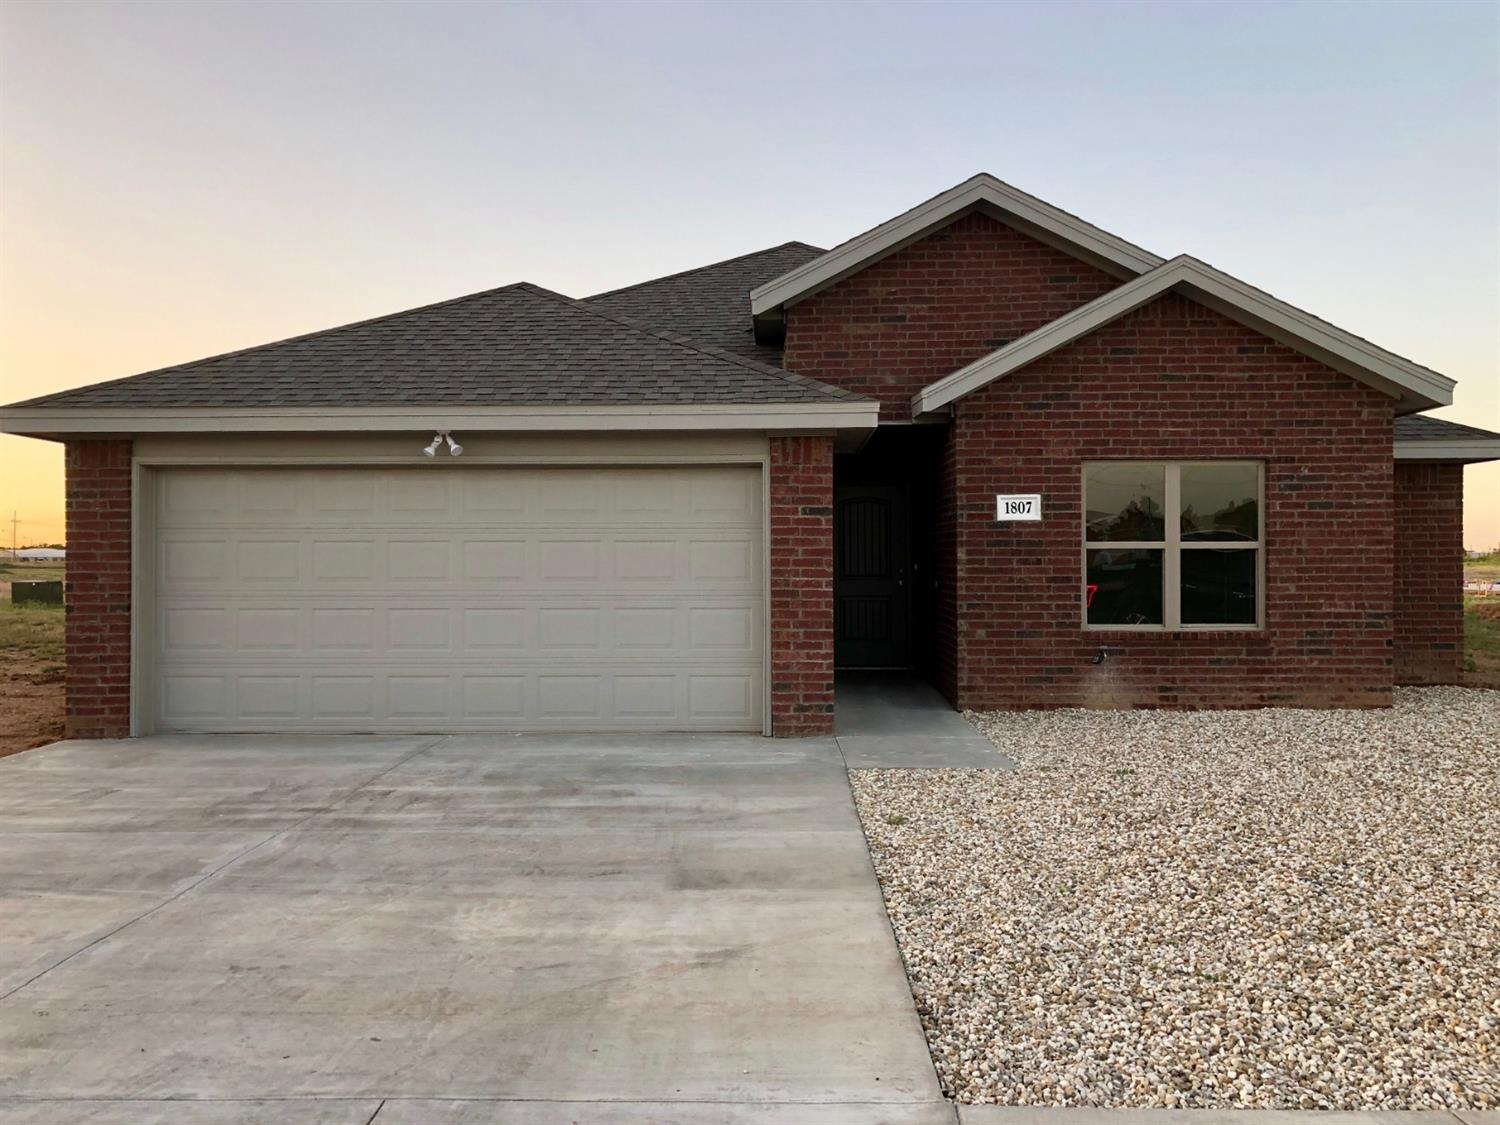 1807 E Grinnell Street, Lubbock, Texas